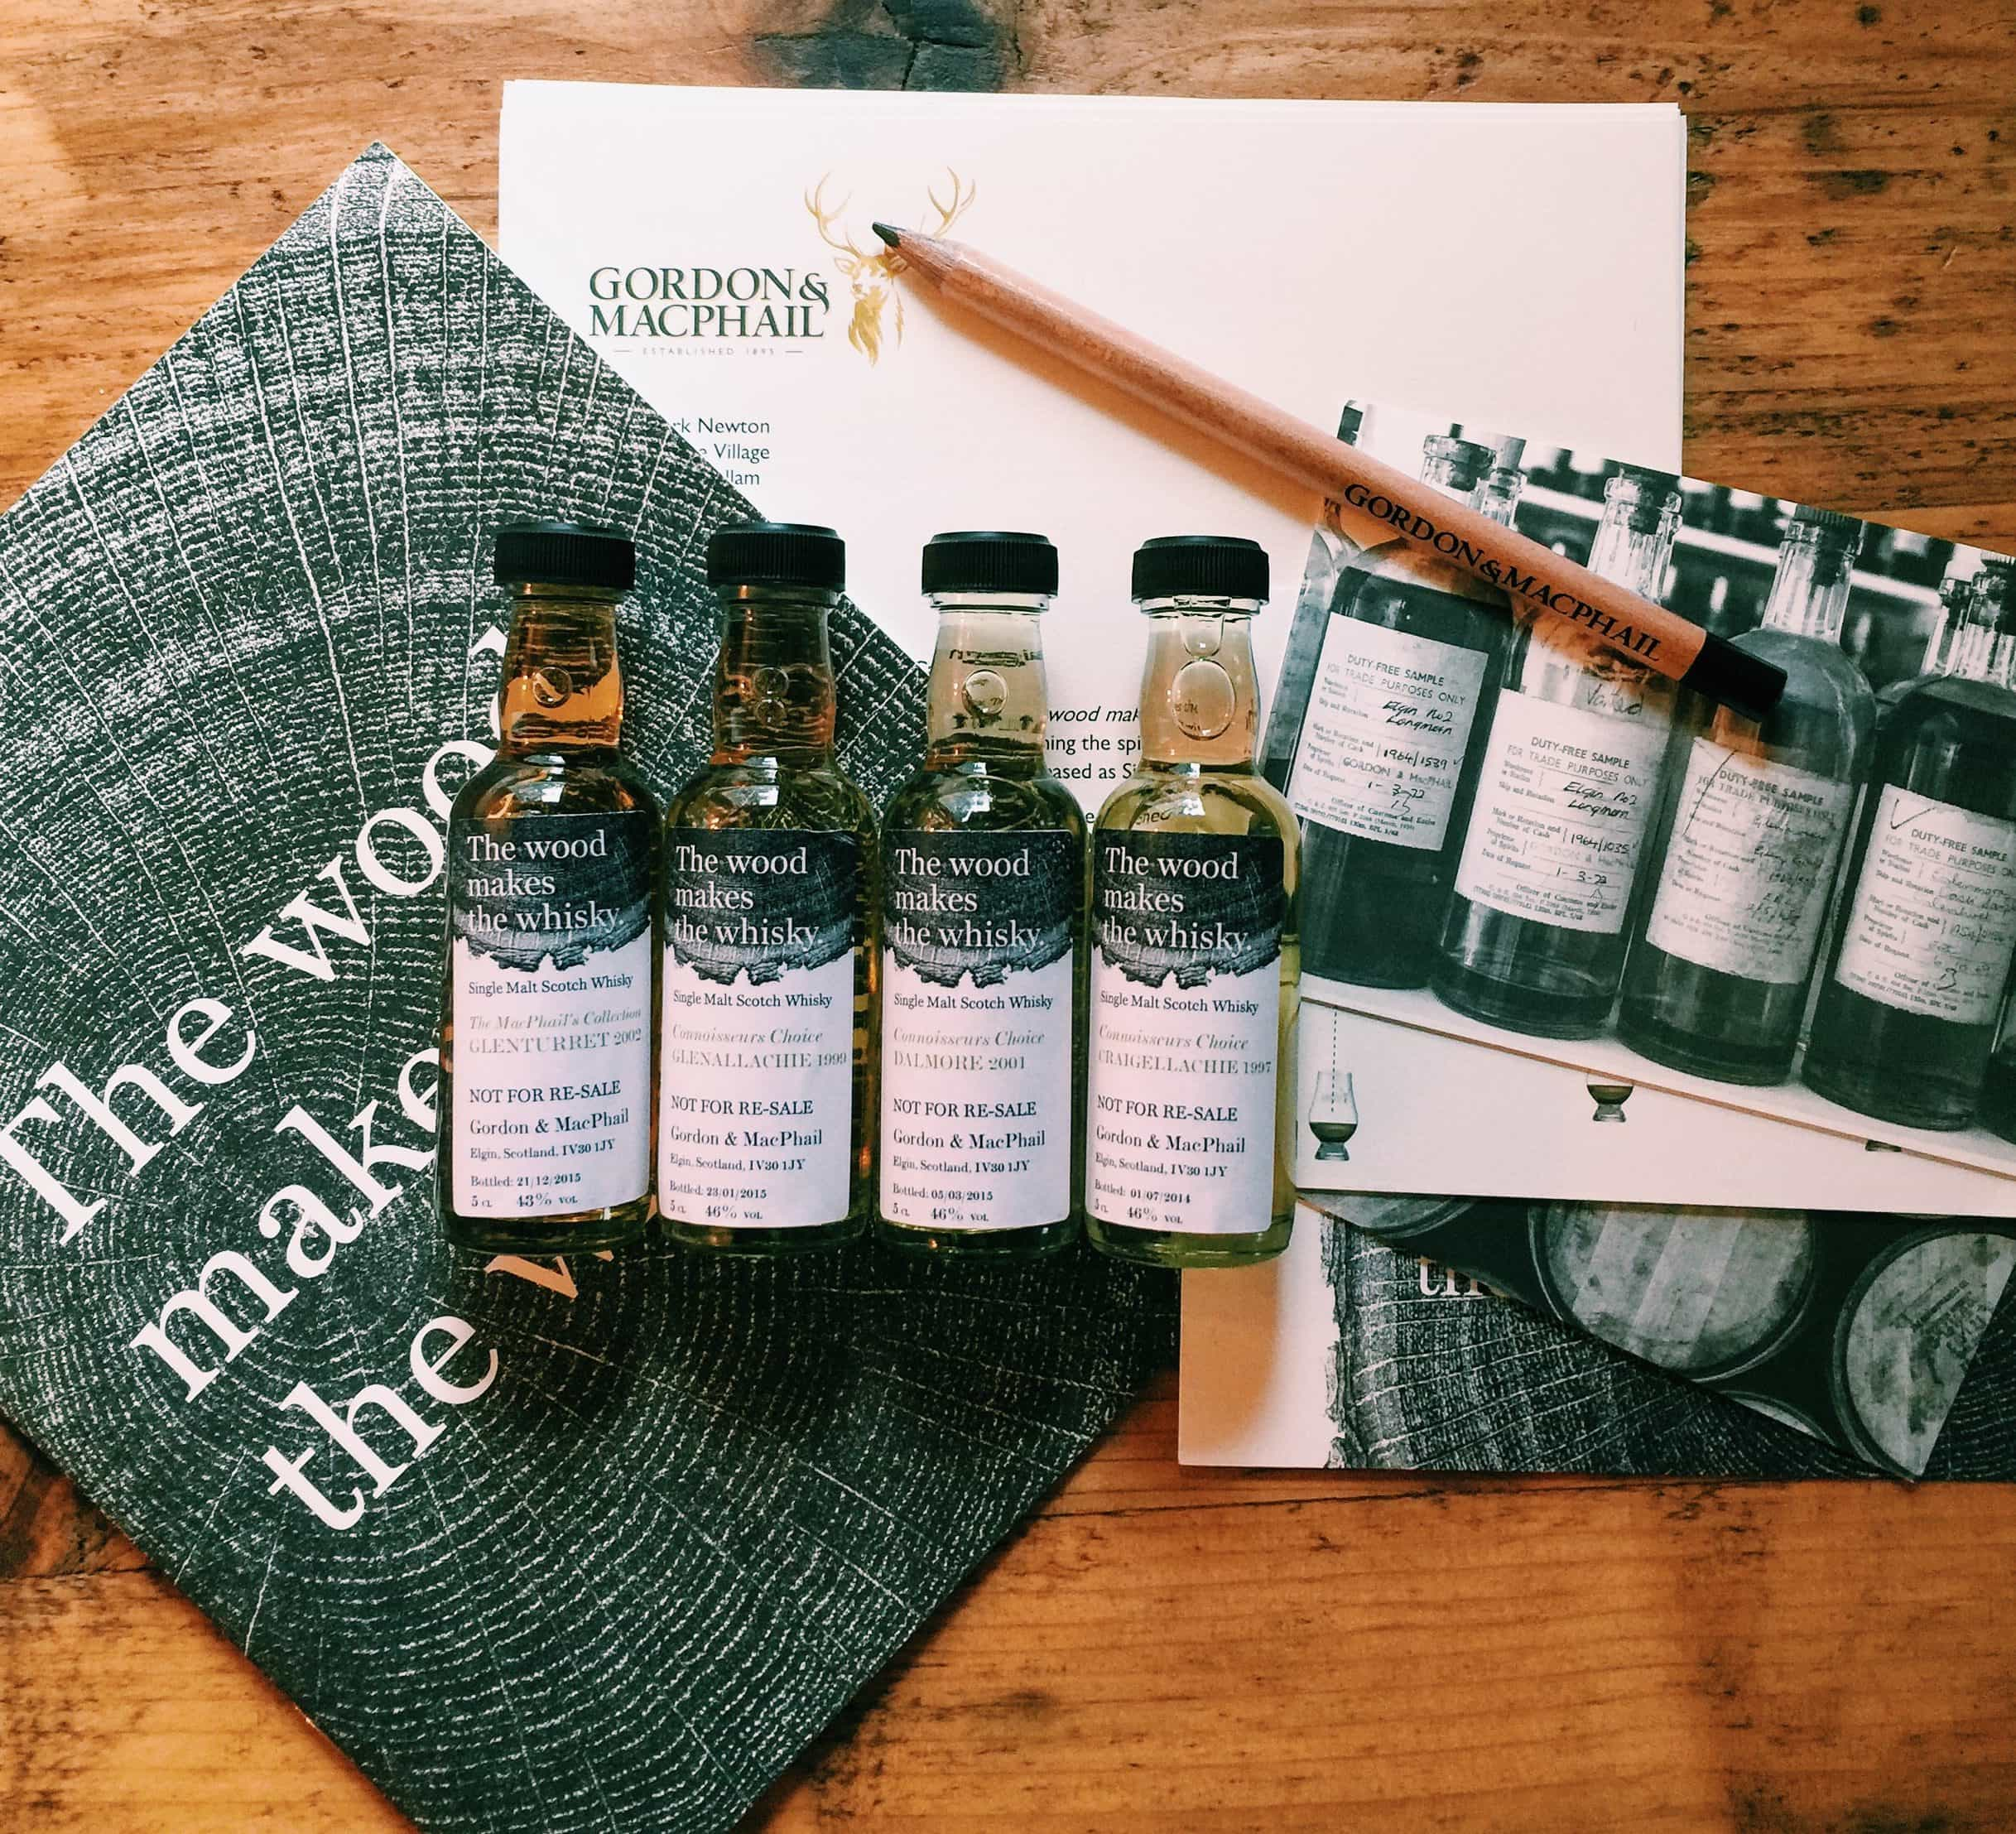 Gordon and MacPhail Wood makes the Whisky